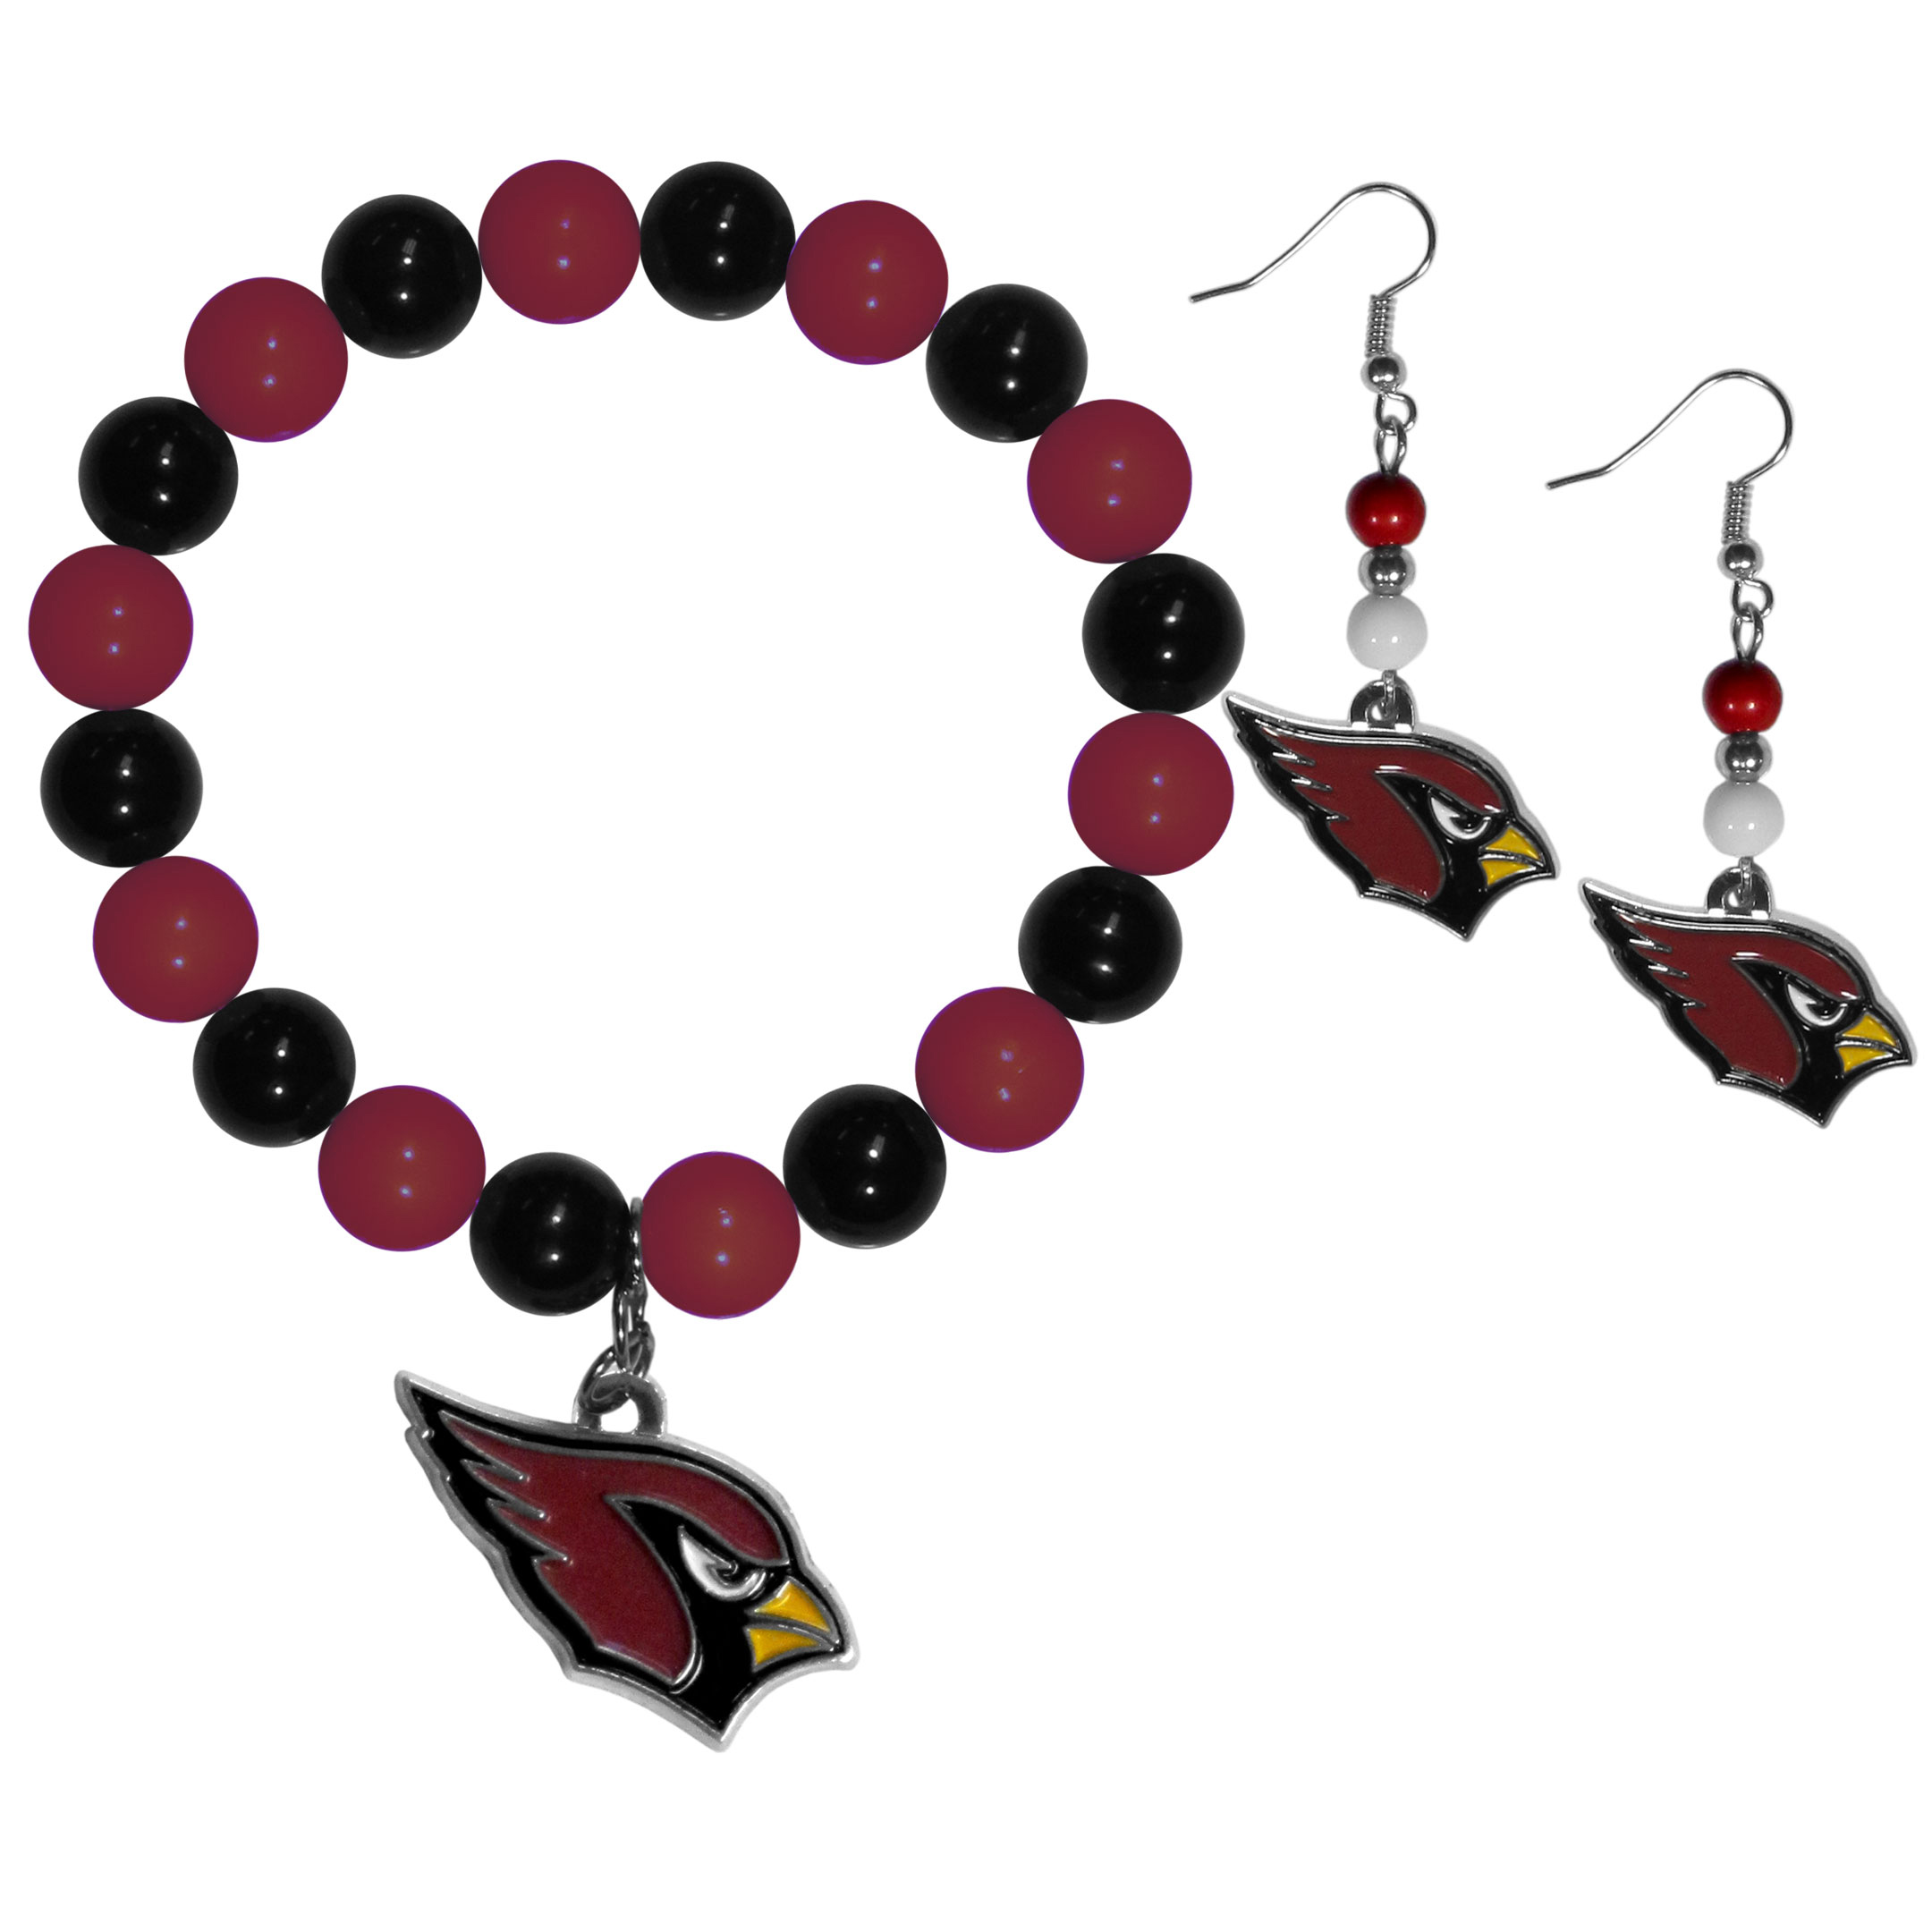 Arizona Cardinals Fan Bead Earrings and Bracelet Set - This fun and colorful Arizona Cardinals fan bead jewelry set is fun and casual with eye-catching beads in bright team colors. The fashionable dangle earrings feature a team colored beads that drop down to a carved and enameled charm. The stretch bracelet has larger matching beads that make a striking statement and have a matching team charm. These sassy yet sporty jewelry pieces make a perfect gift for any female fan. Spice up your game-day outfit with these fun colorful earrings and bracelet that are also cute enough for any day.